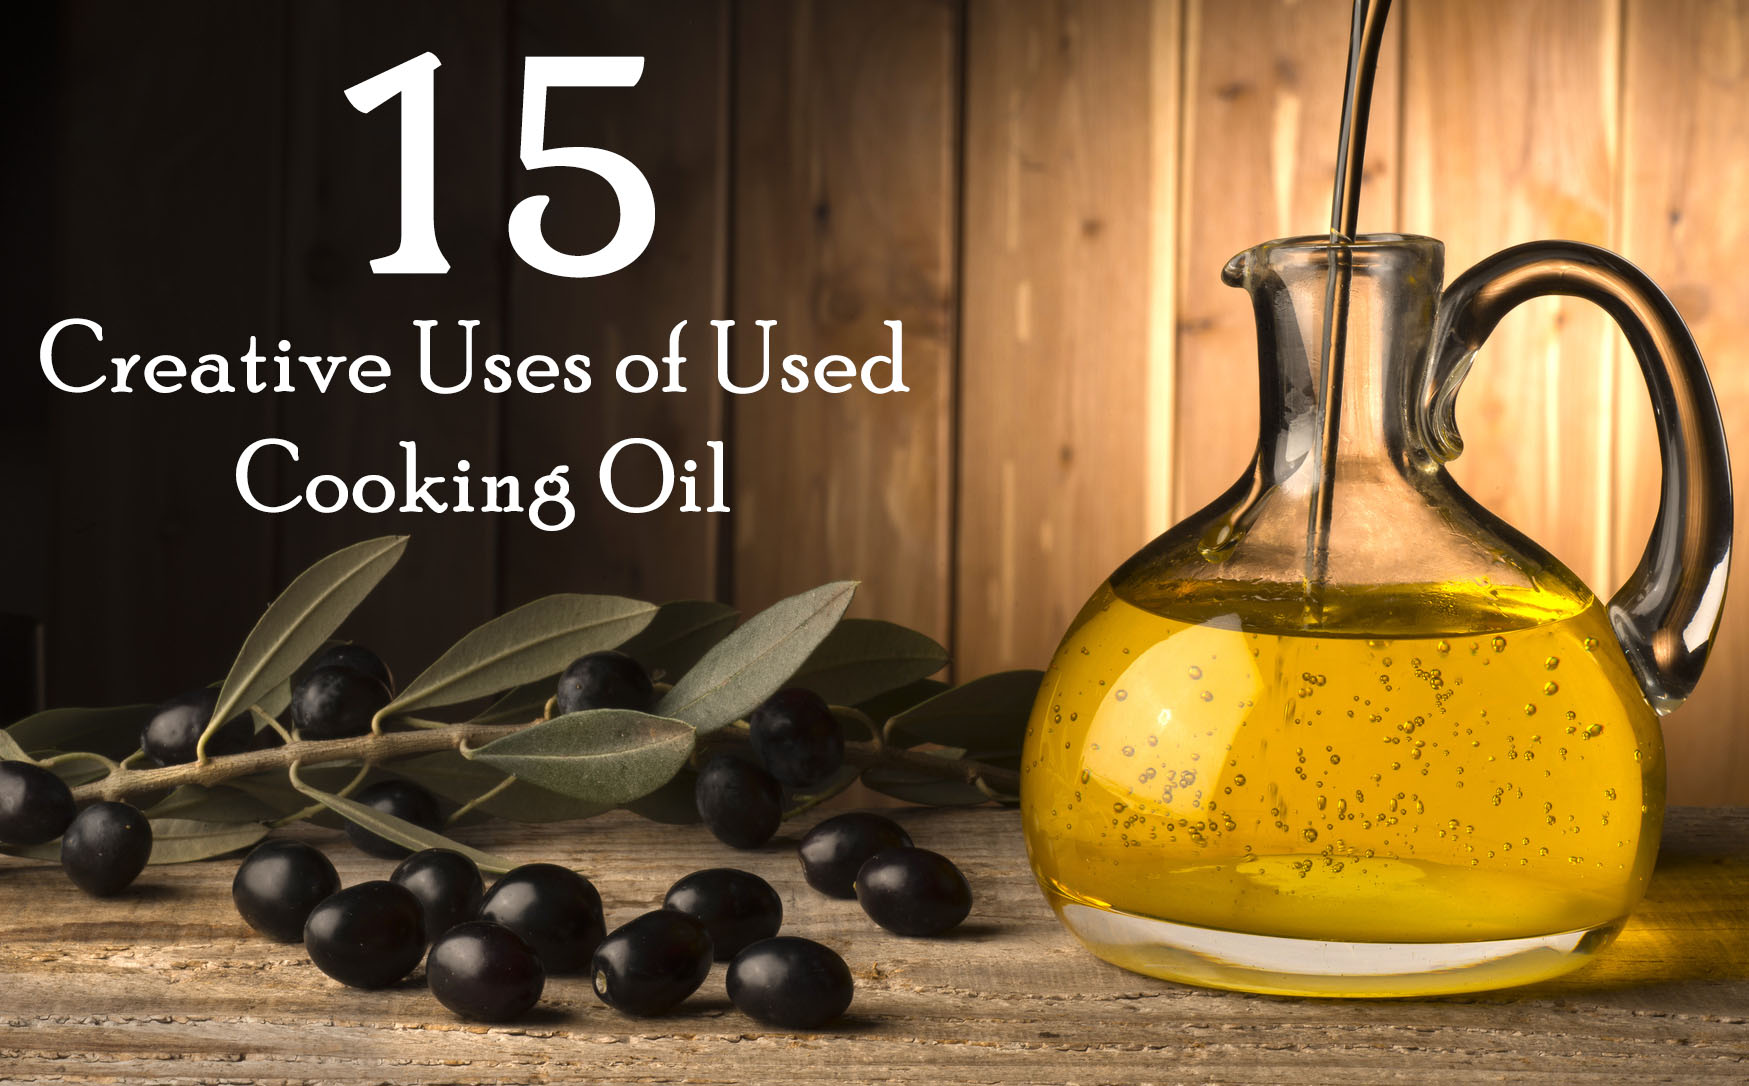 15 Creative Uses Of Used Cooking Oil You Never Knew About